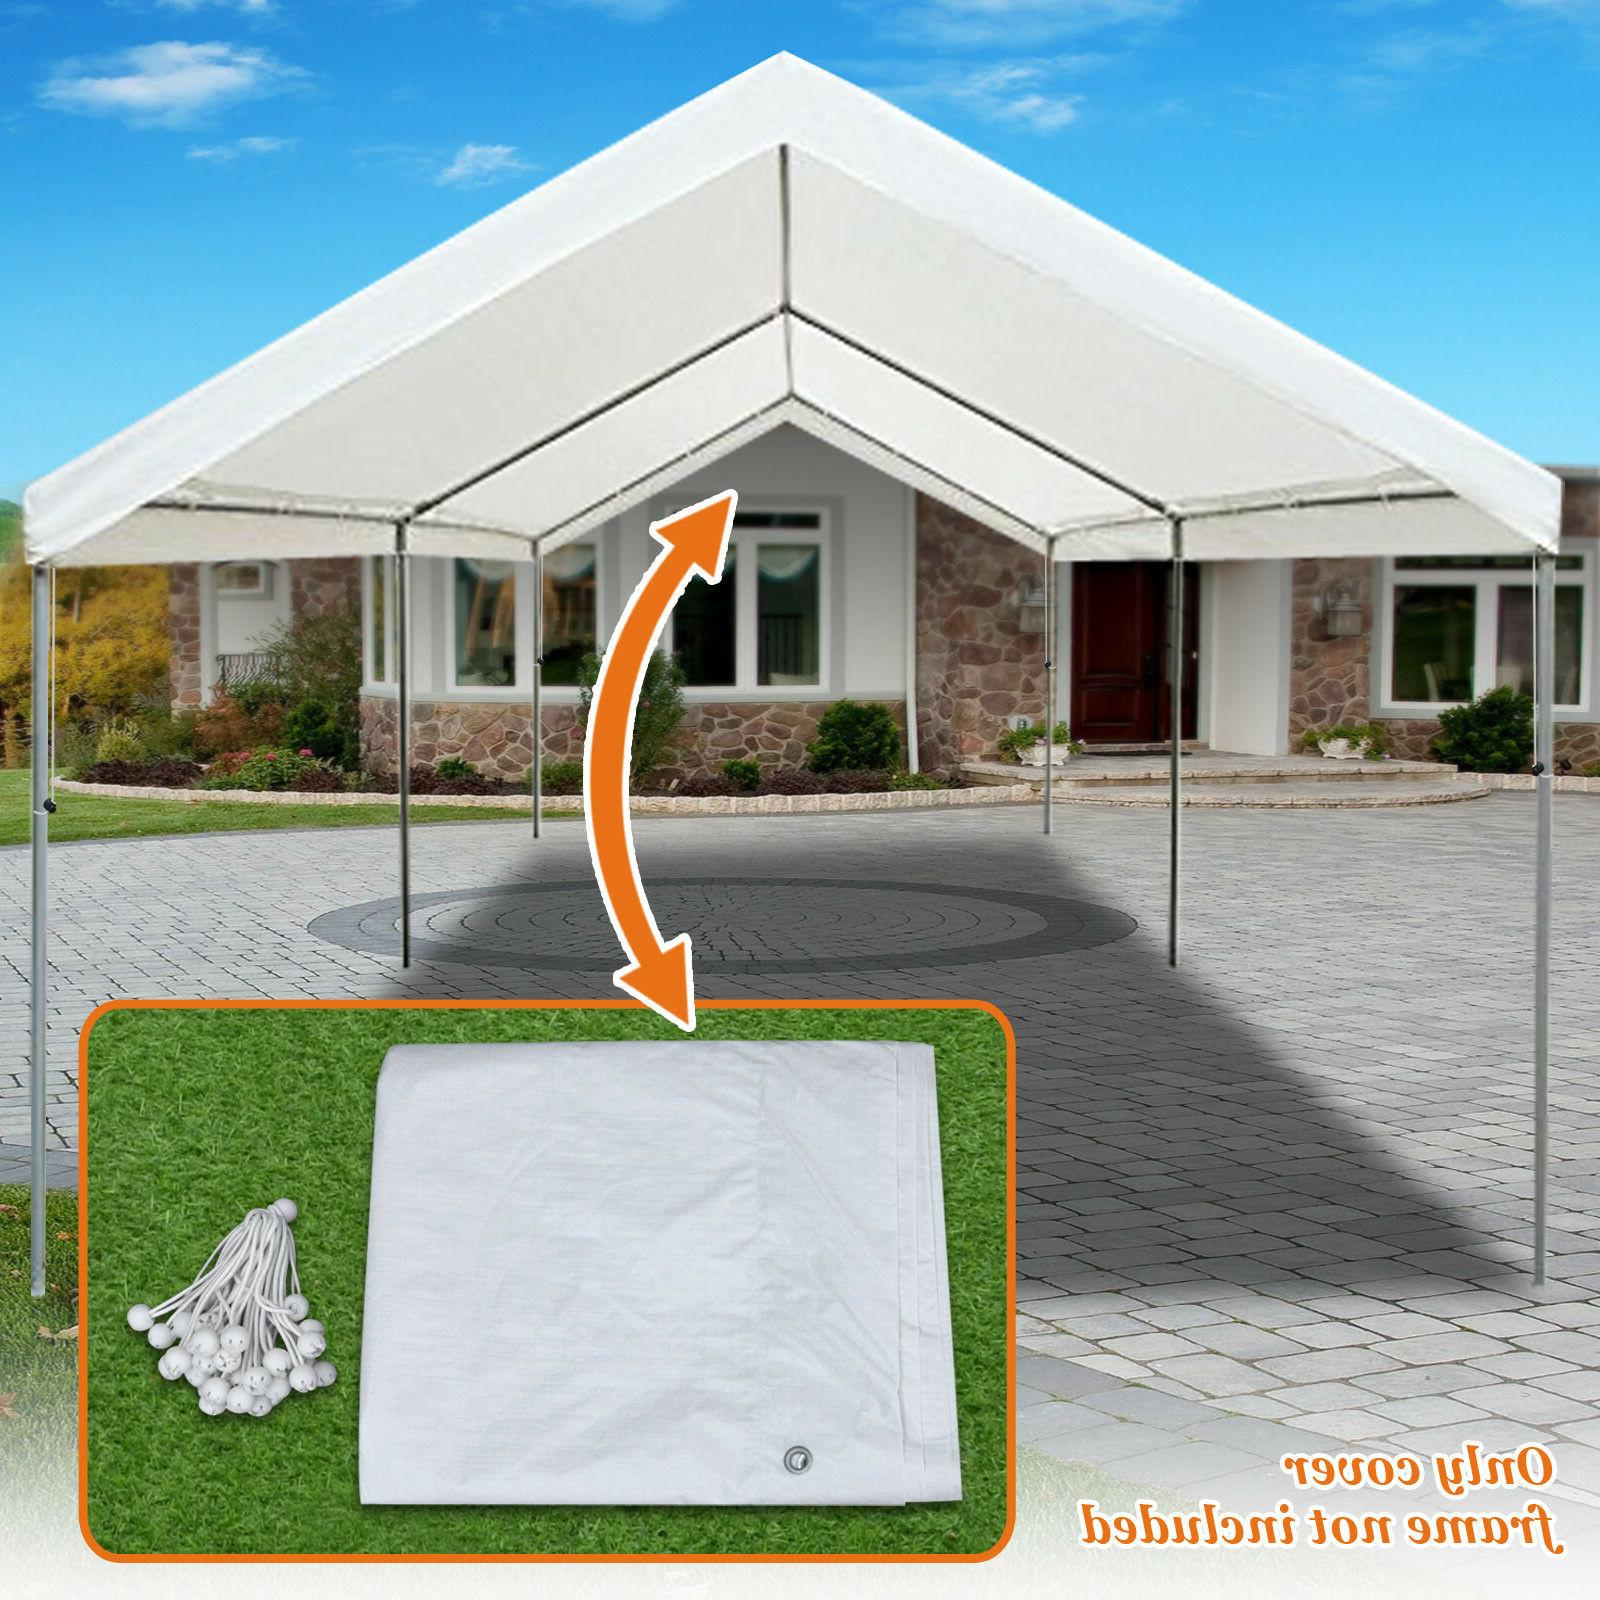 10'x20' Carport Replacement Canopy Cover for Tent Top